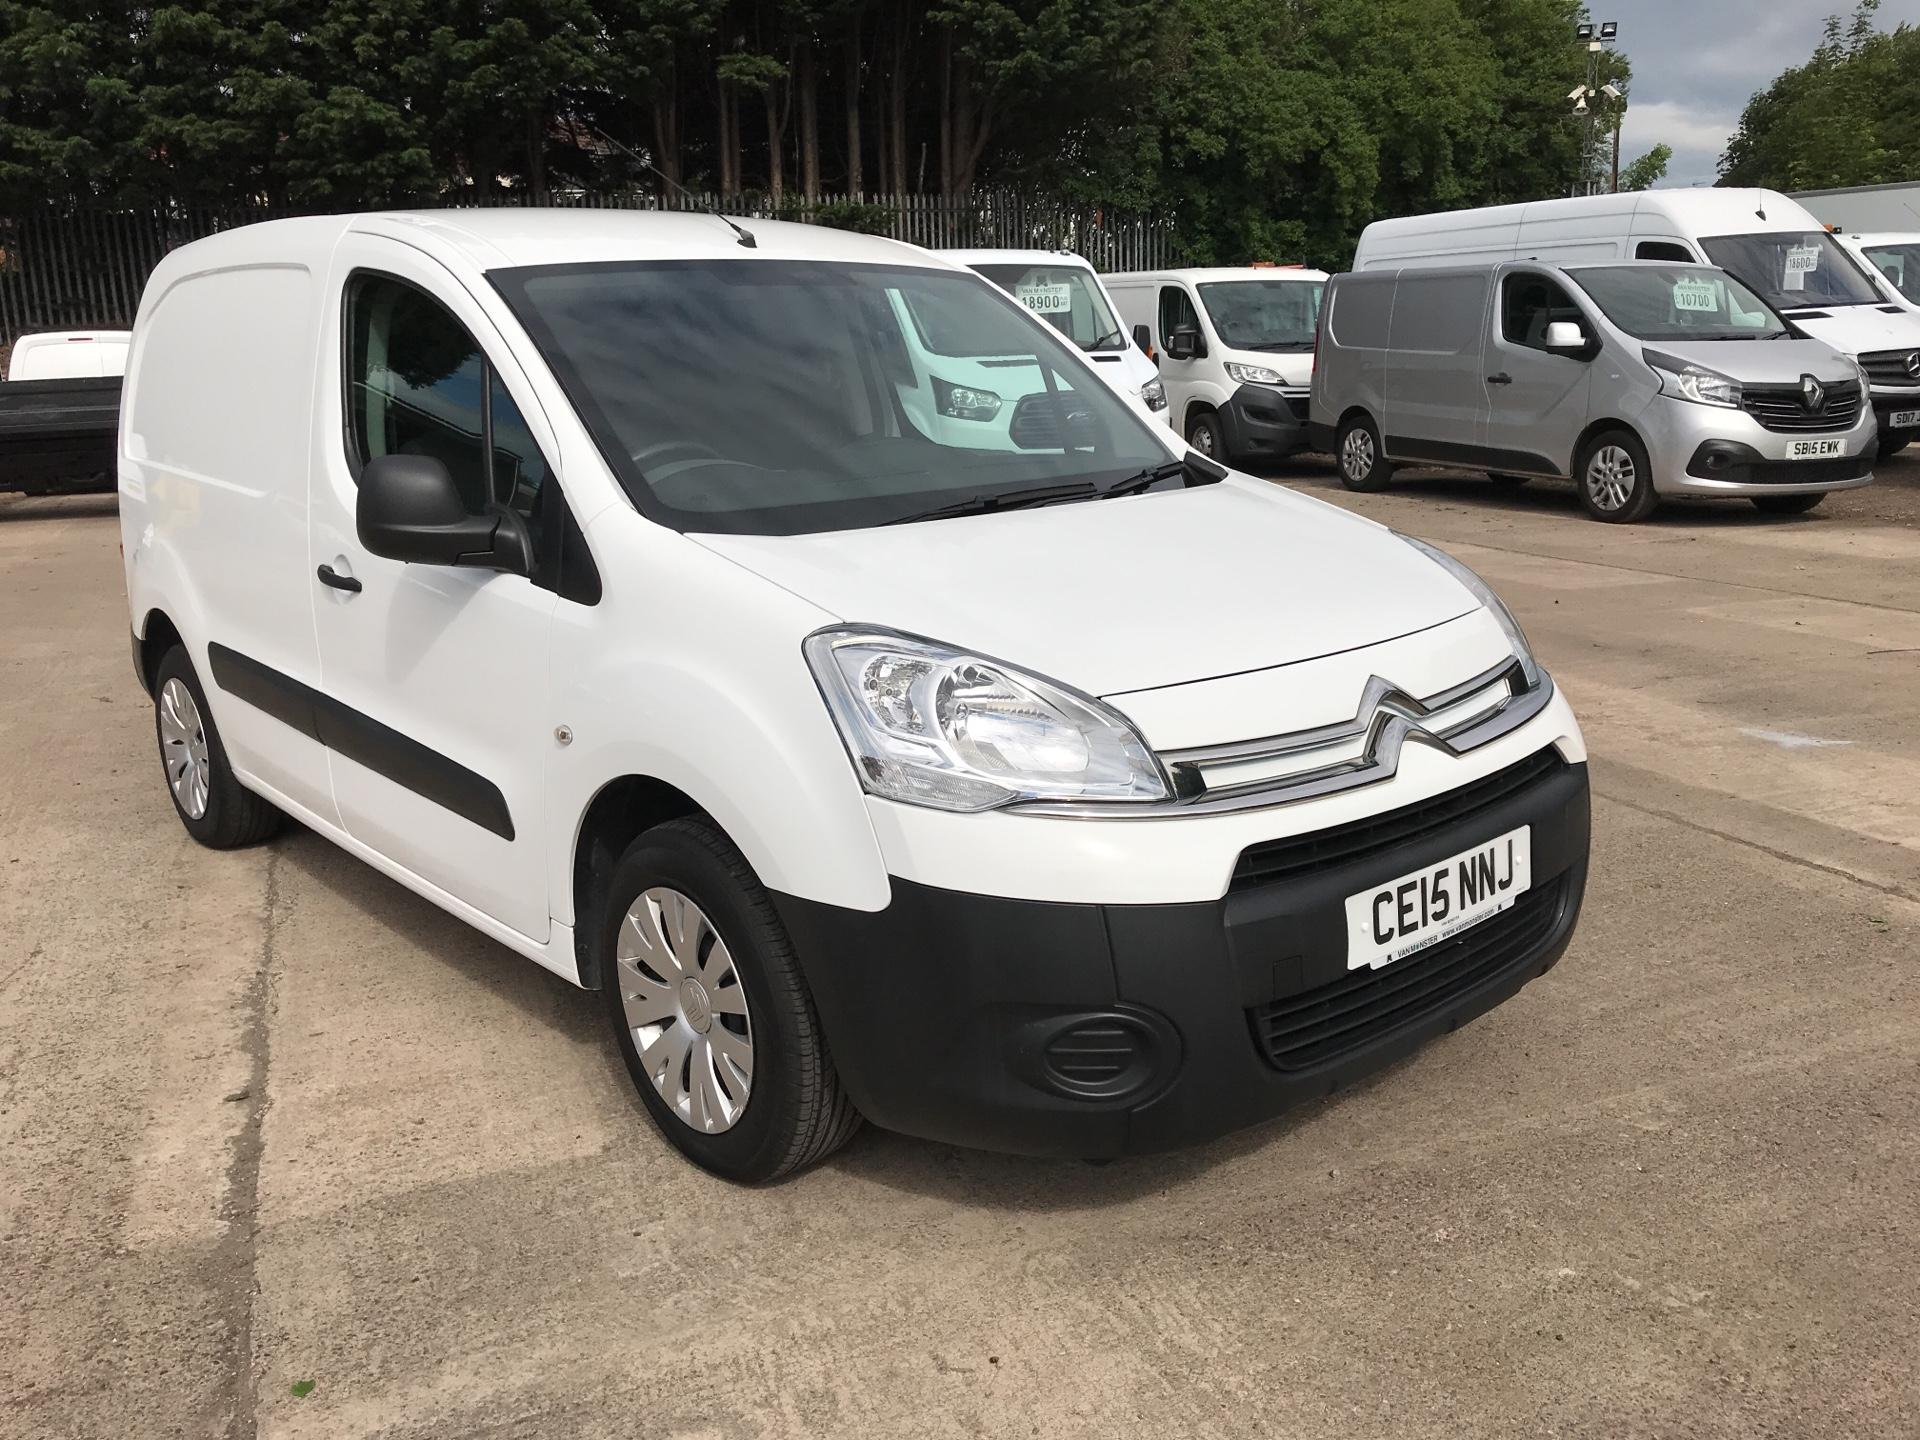 2015 Citroen Berlingo L1 DIESEL 1.6 HDI 625KG ENTERPRISE 75PS EURO 4/5 (CE15NNJ)